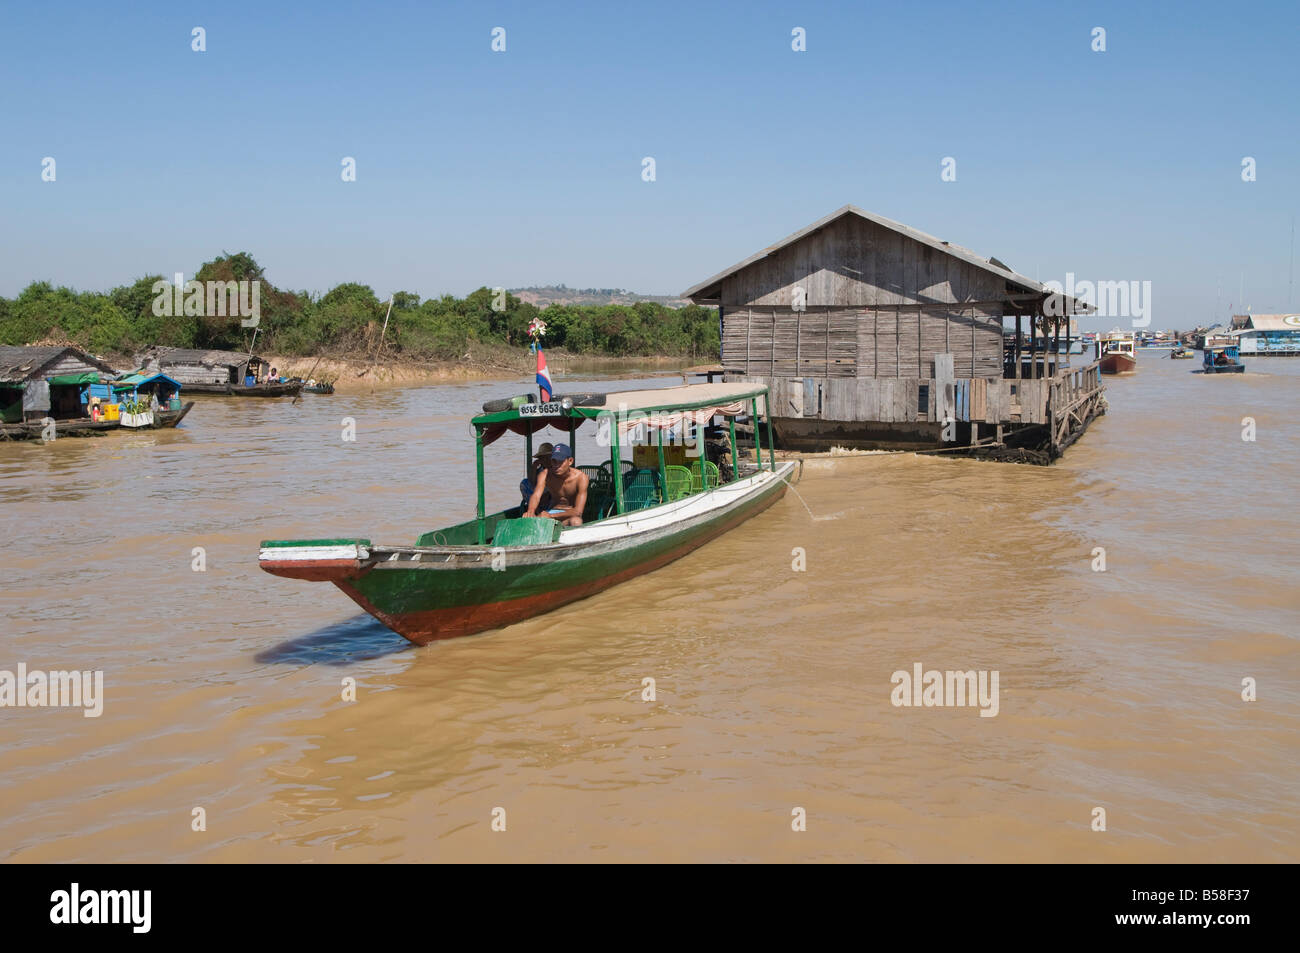 Floating house being moved, Tonle Sap Lake, near Siem Reap, Cambodia, Indochina, Southeast Asia - Stock Image